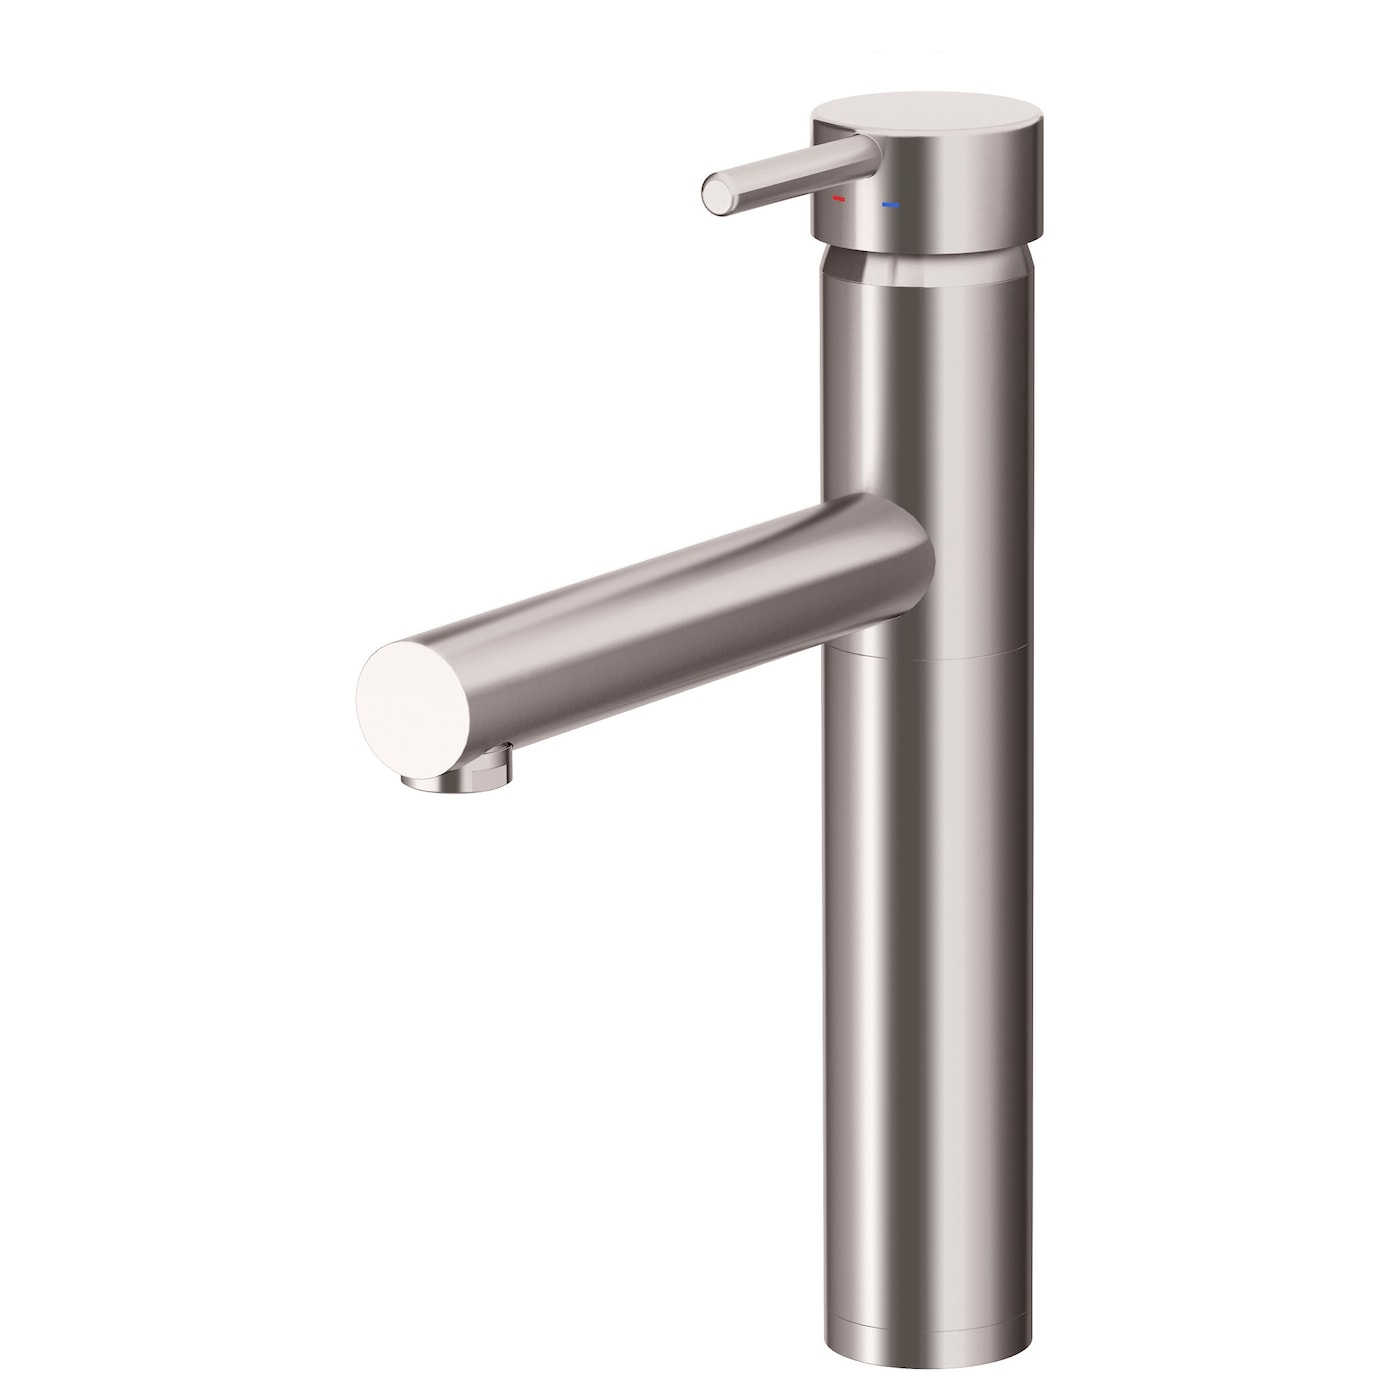 IKEA MALMSJÖN kitchen mixer tap 10 year guarantee. Read about the terms in the guarantee brochure.